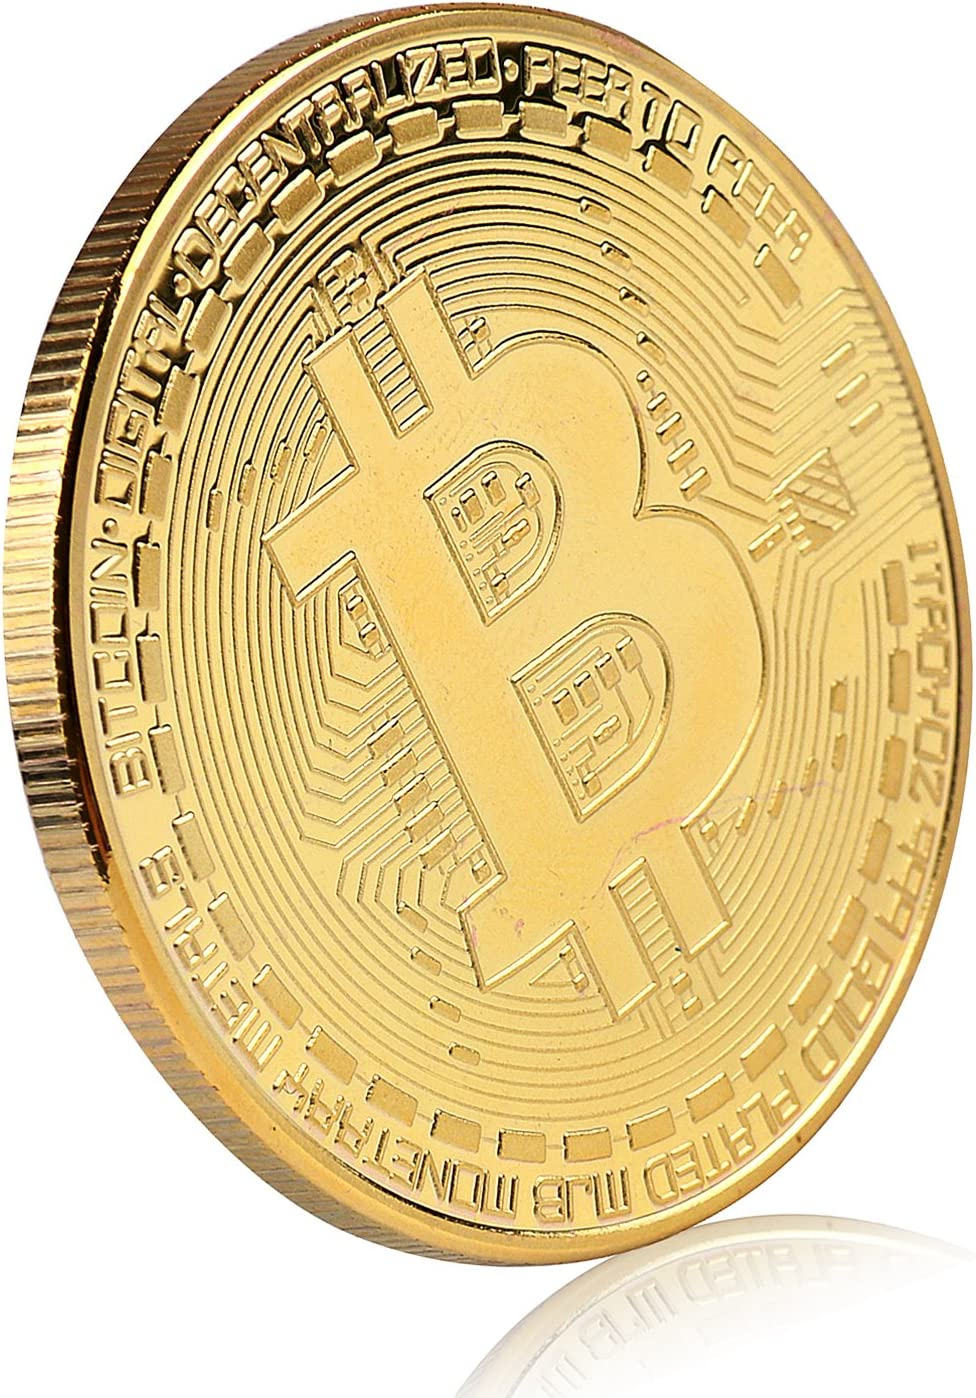 Amazon Com Bitcoin Commemorative Coin 24k Gold Plated Btc Limited Edition Collectible Coin With Protective Case Toys Games